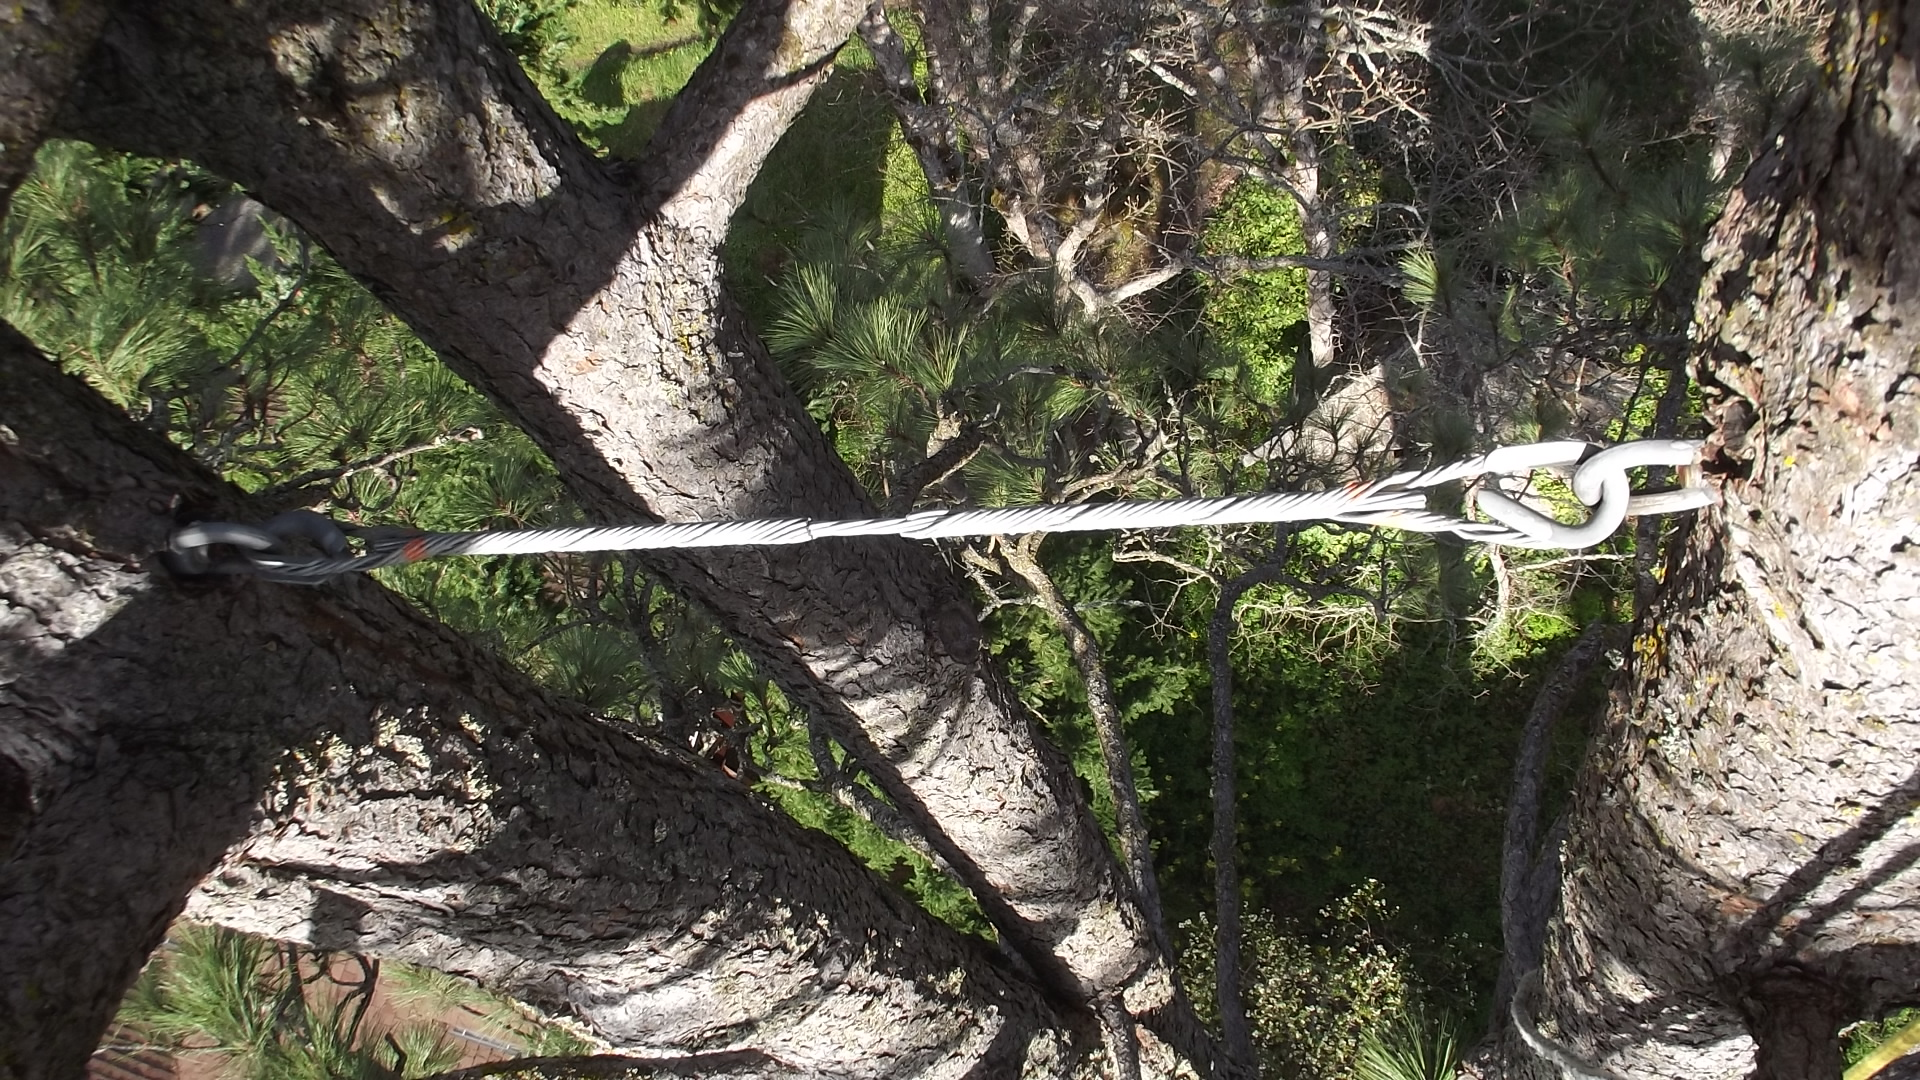 gorge-tree-services-cable-bracing-safety-bolts-harness-installation-multitrunk-support-cabling.jpg